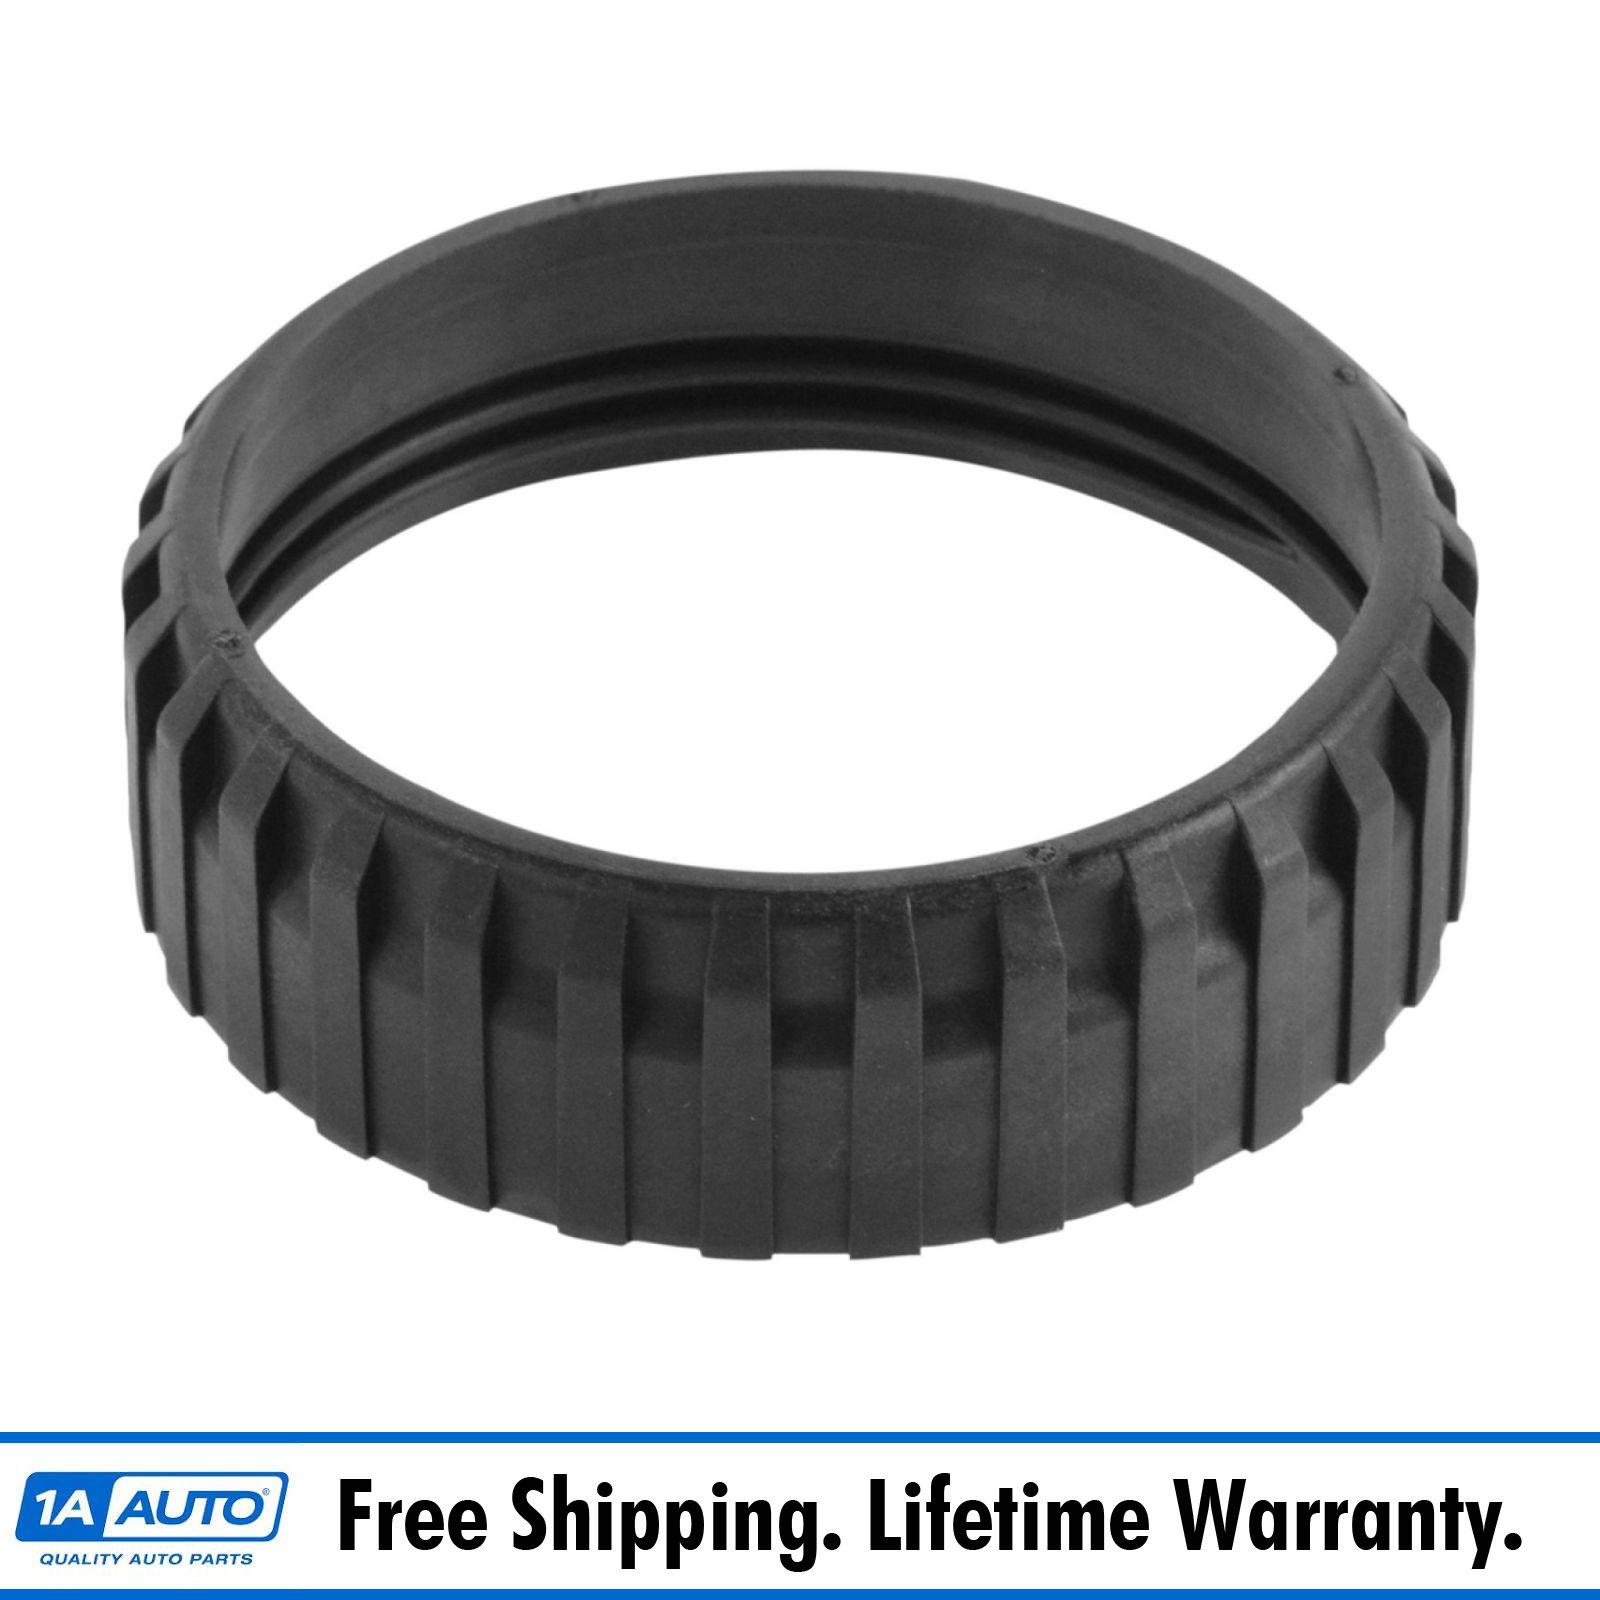 Details about OEM 12511963 Fuel Filter Nut Molded Plastic 6.5L sel on 92 chevy truck fuel filter, 94 chevy cavalier fuel filter, chevy s10 fuel filter, 93 chevy truck fuel filter, 1994 chevy truck fuel filter,